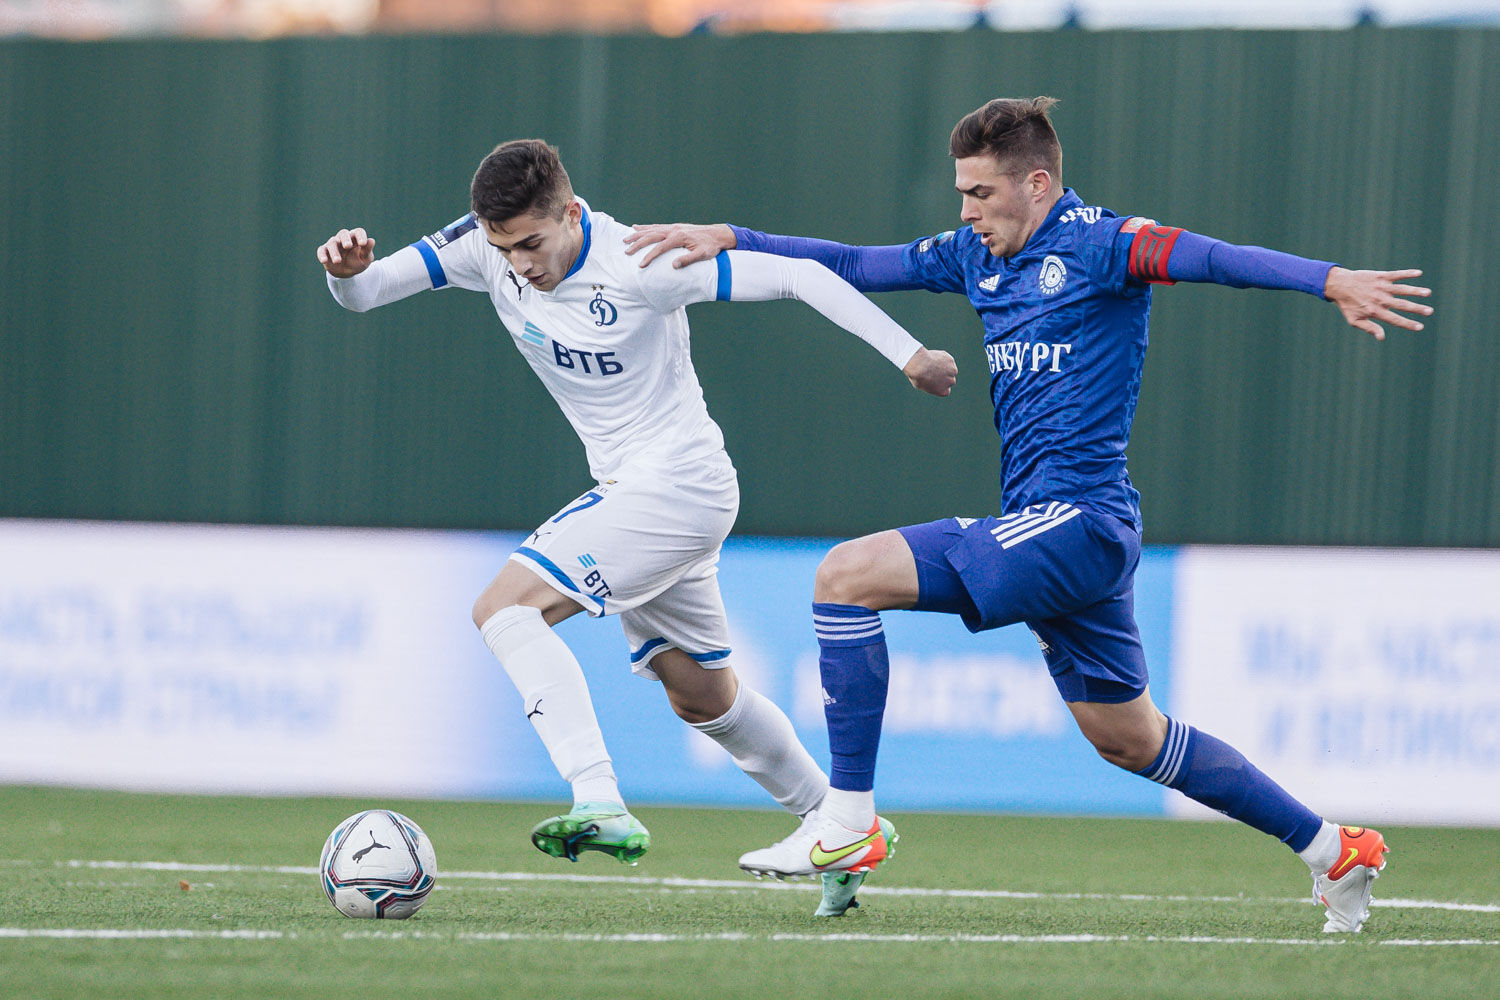 Photo gallery from the match against Orenburg